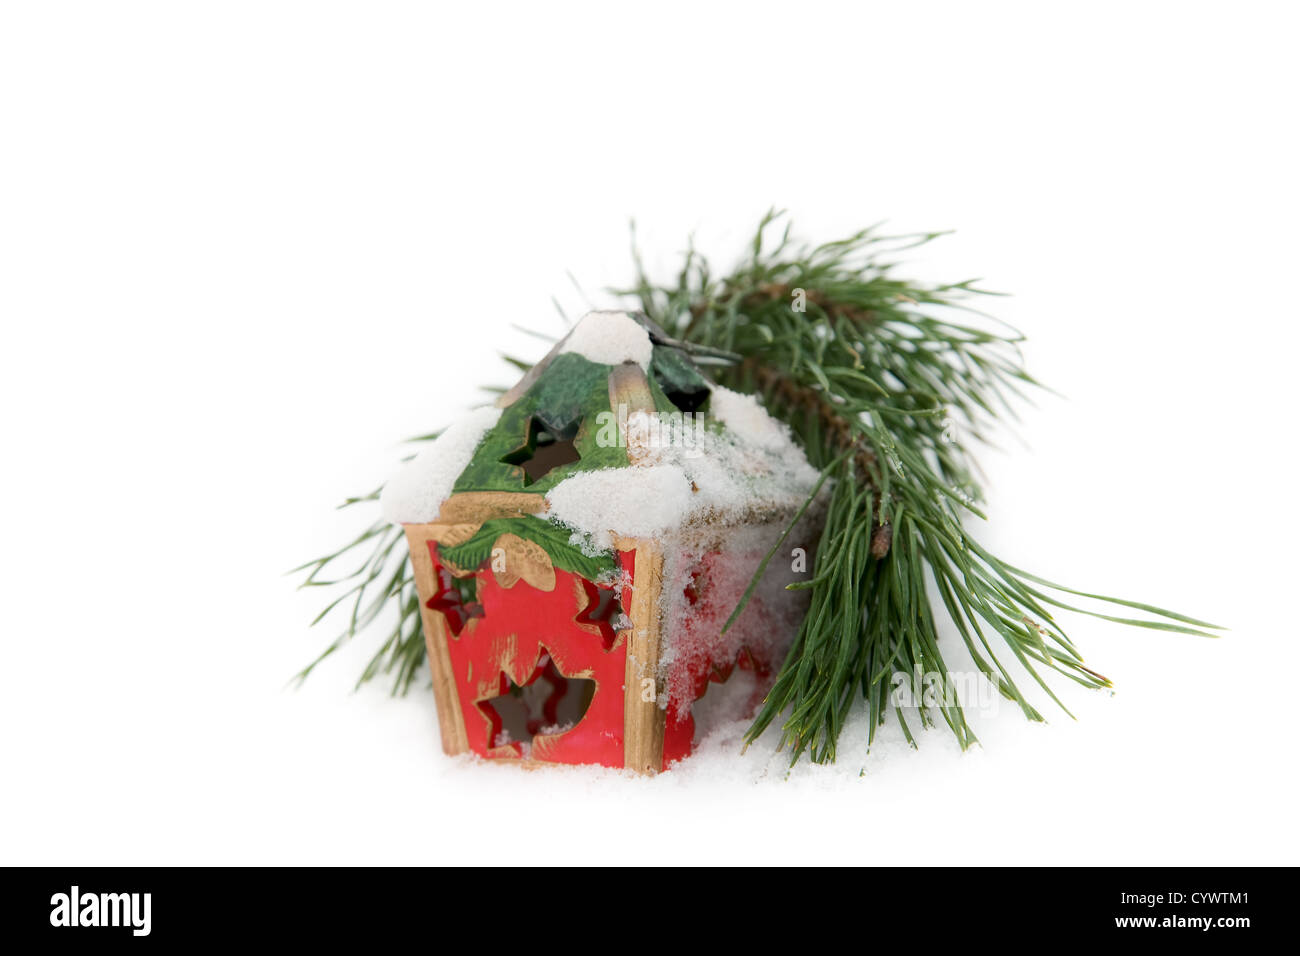 twig of fir and Christmas candle on snow background - Stock Image